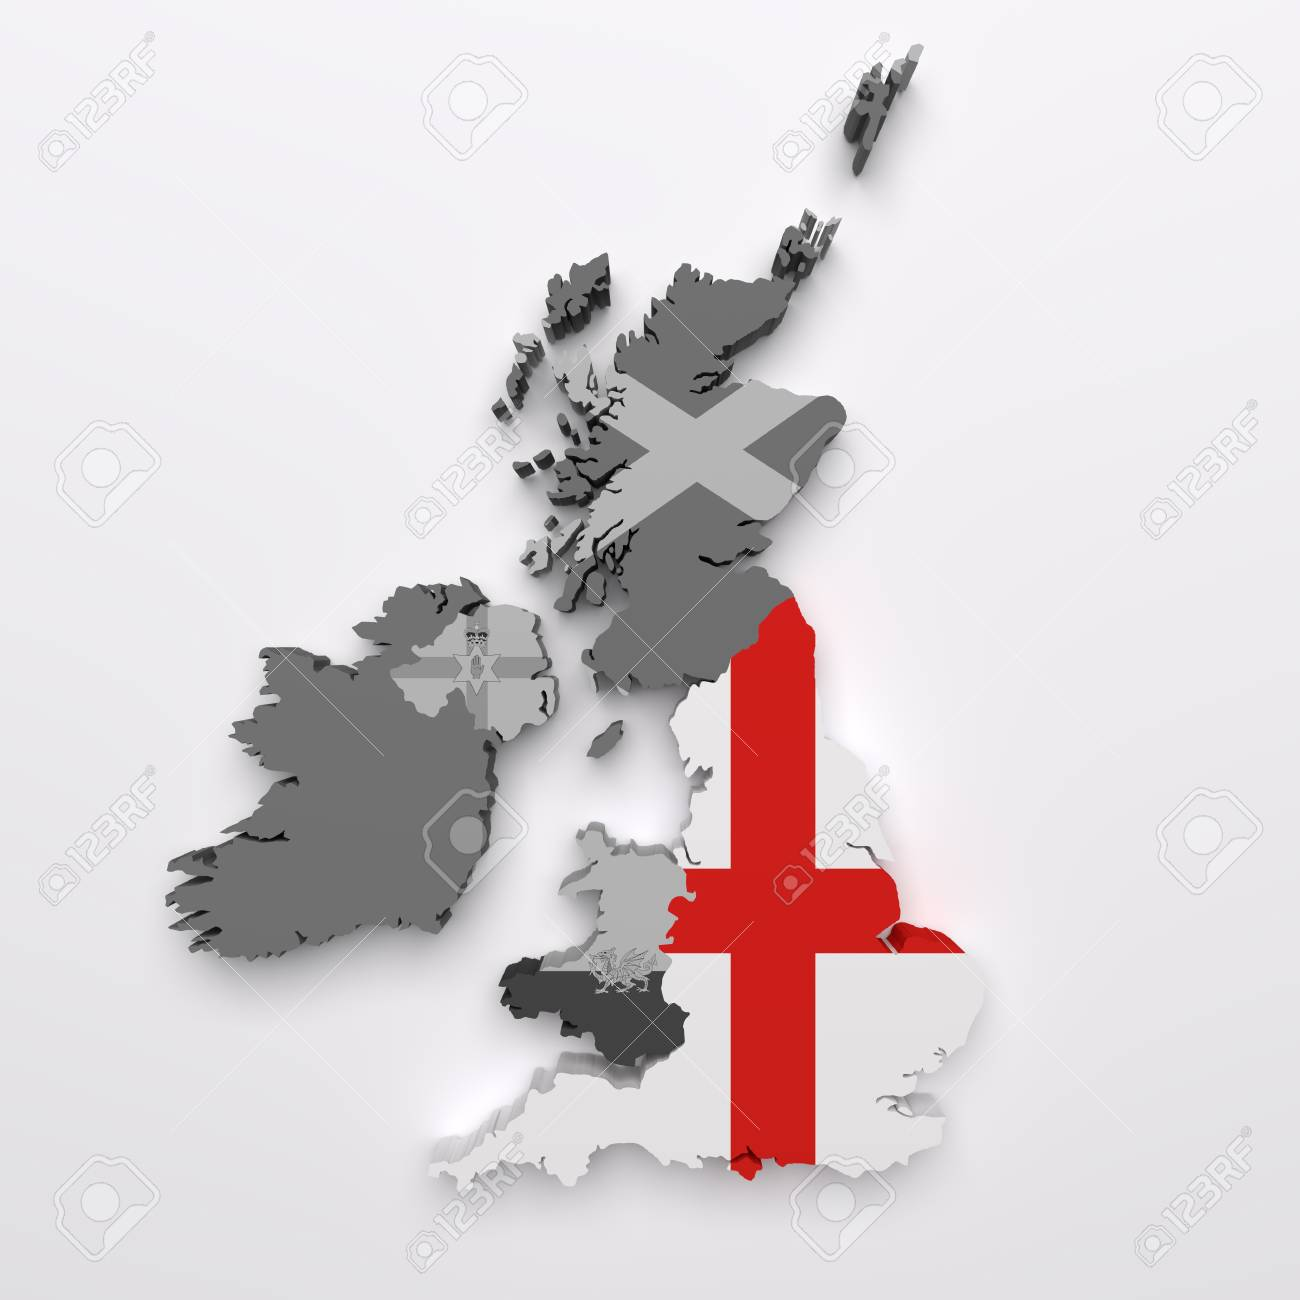 3d Rendering Of All The United Kingdom Countries Maps And Flags England Flag In Color